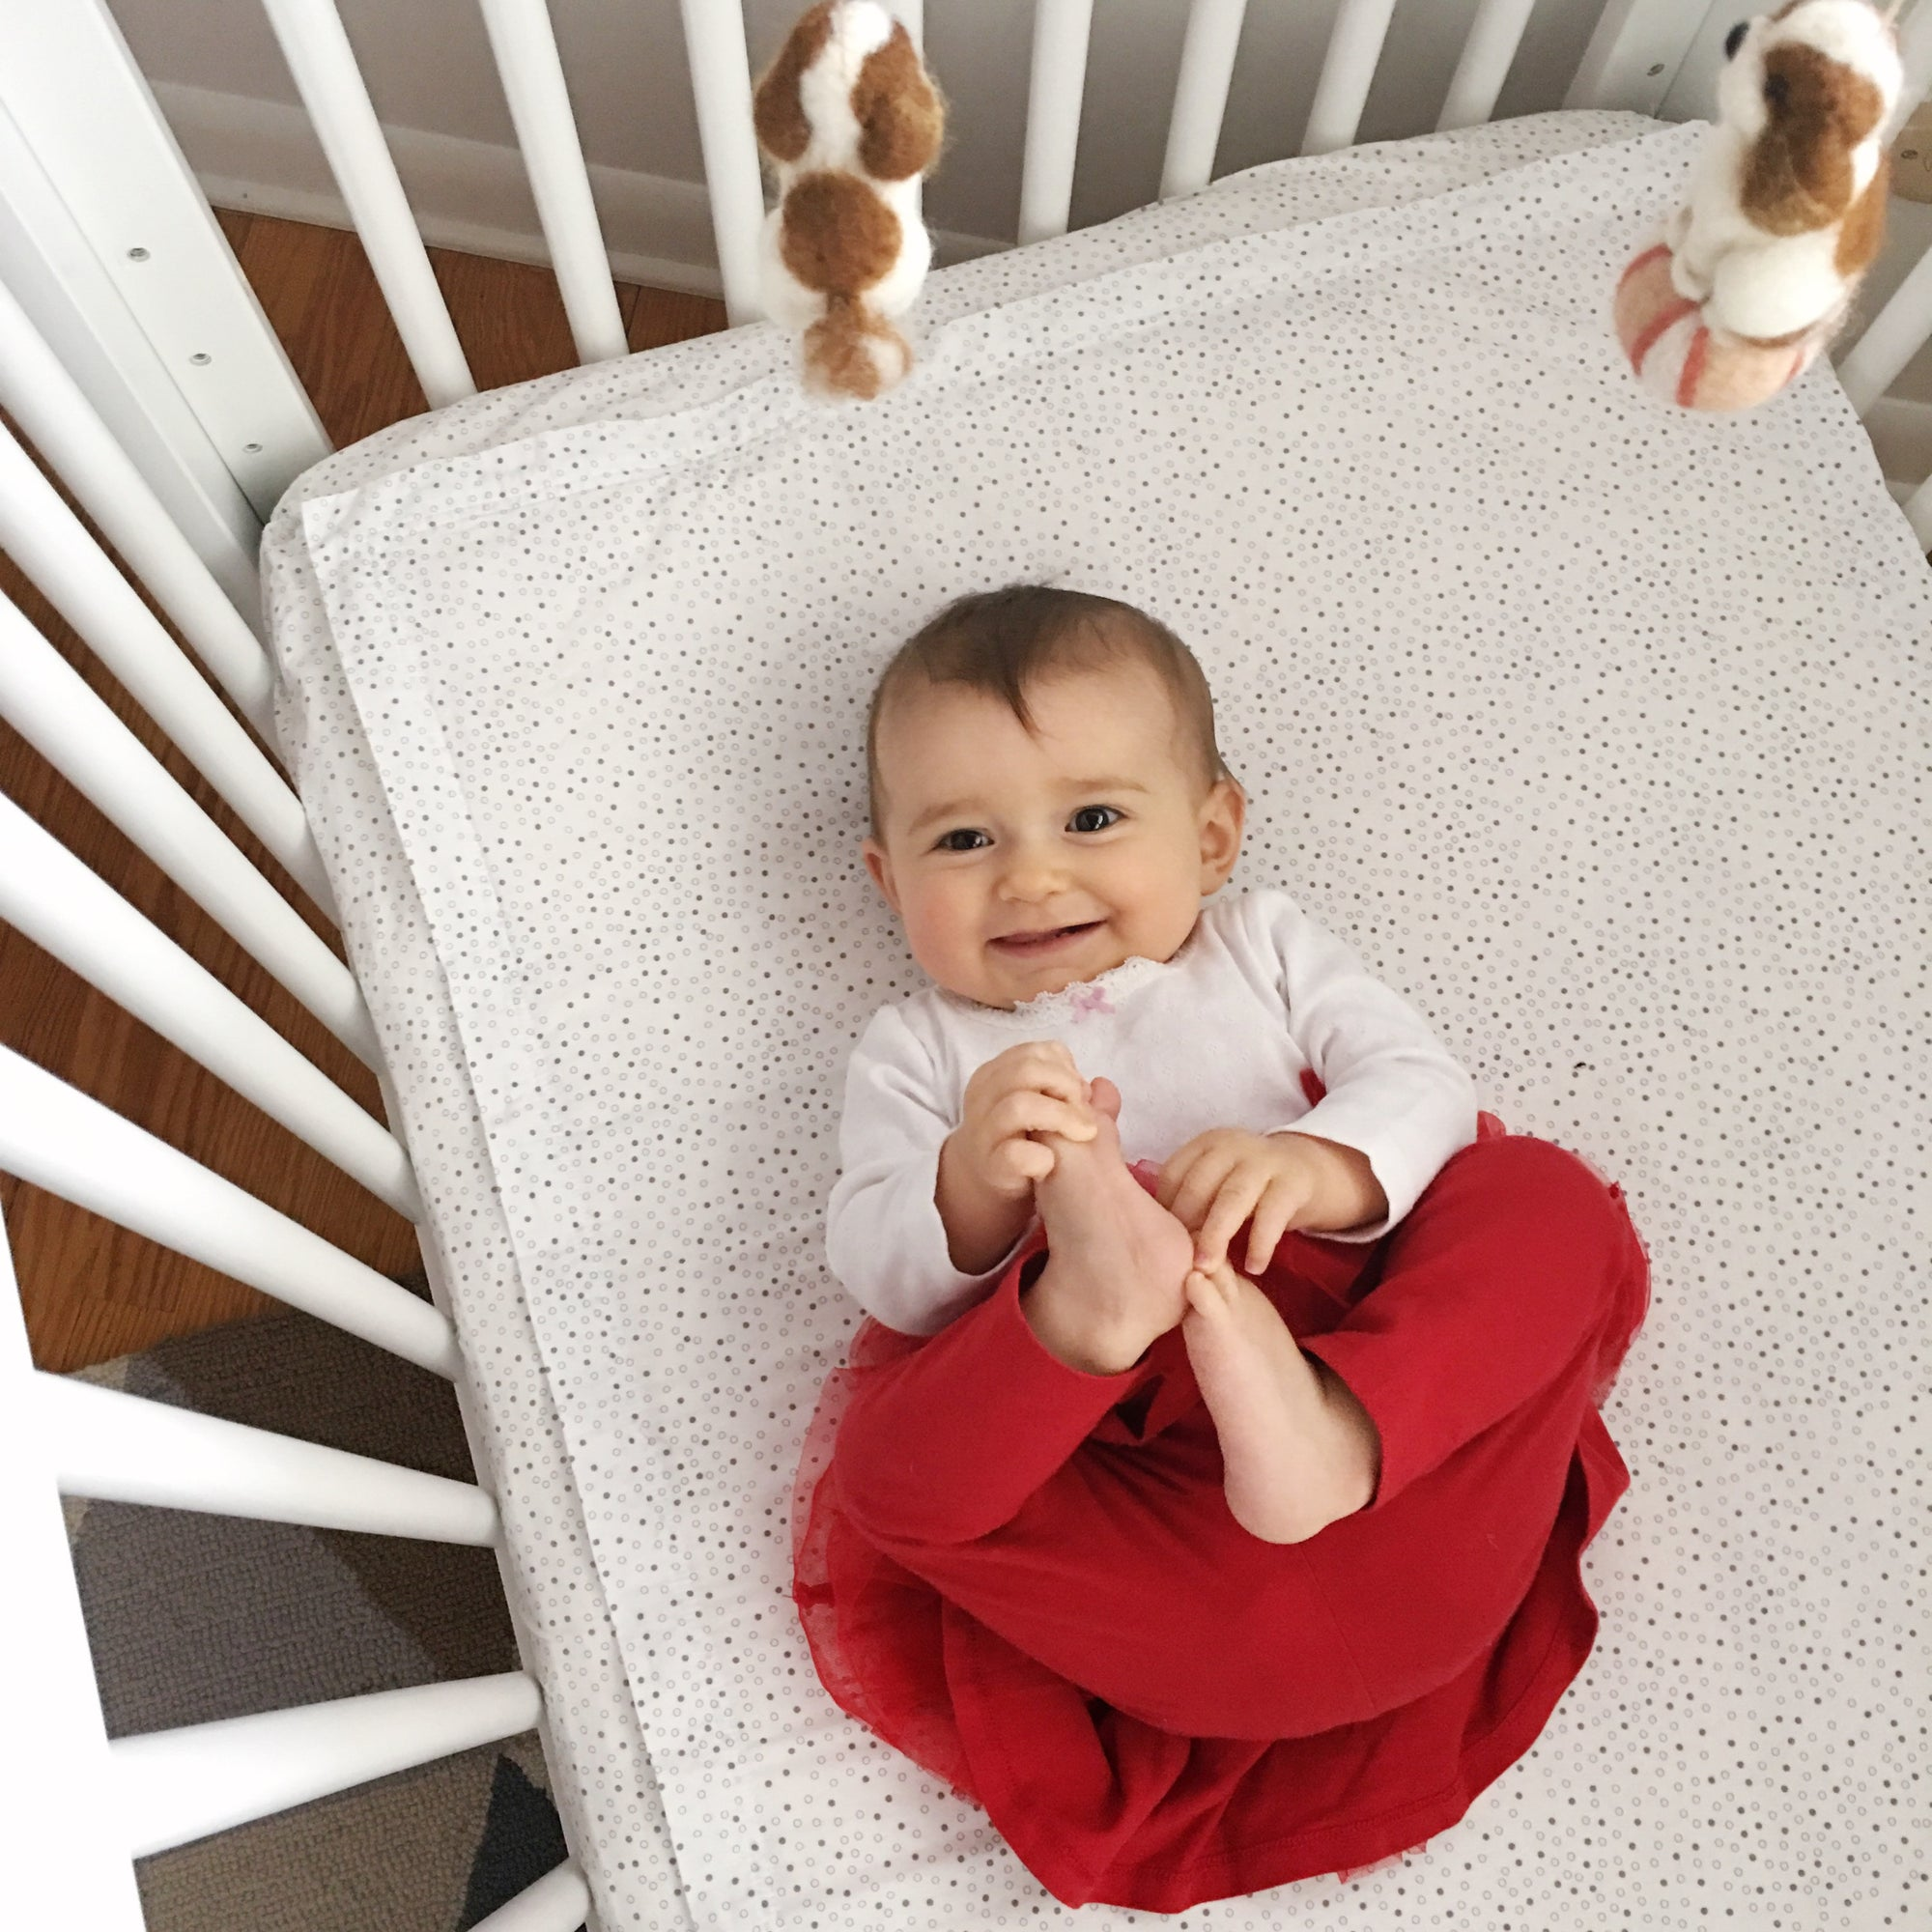 Crib Bedding and Safety Concerns